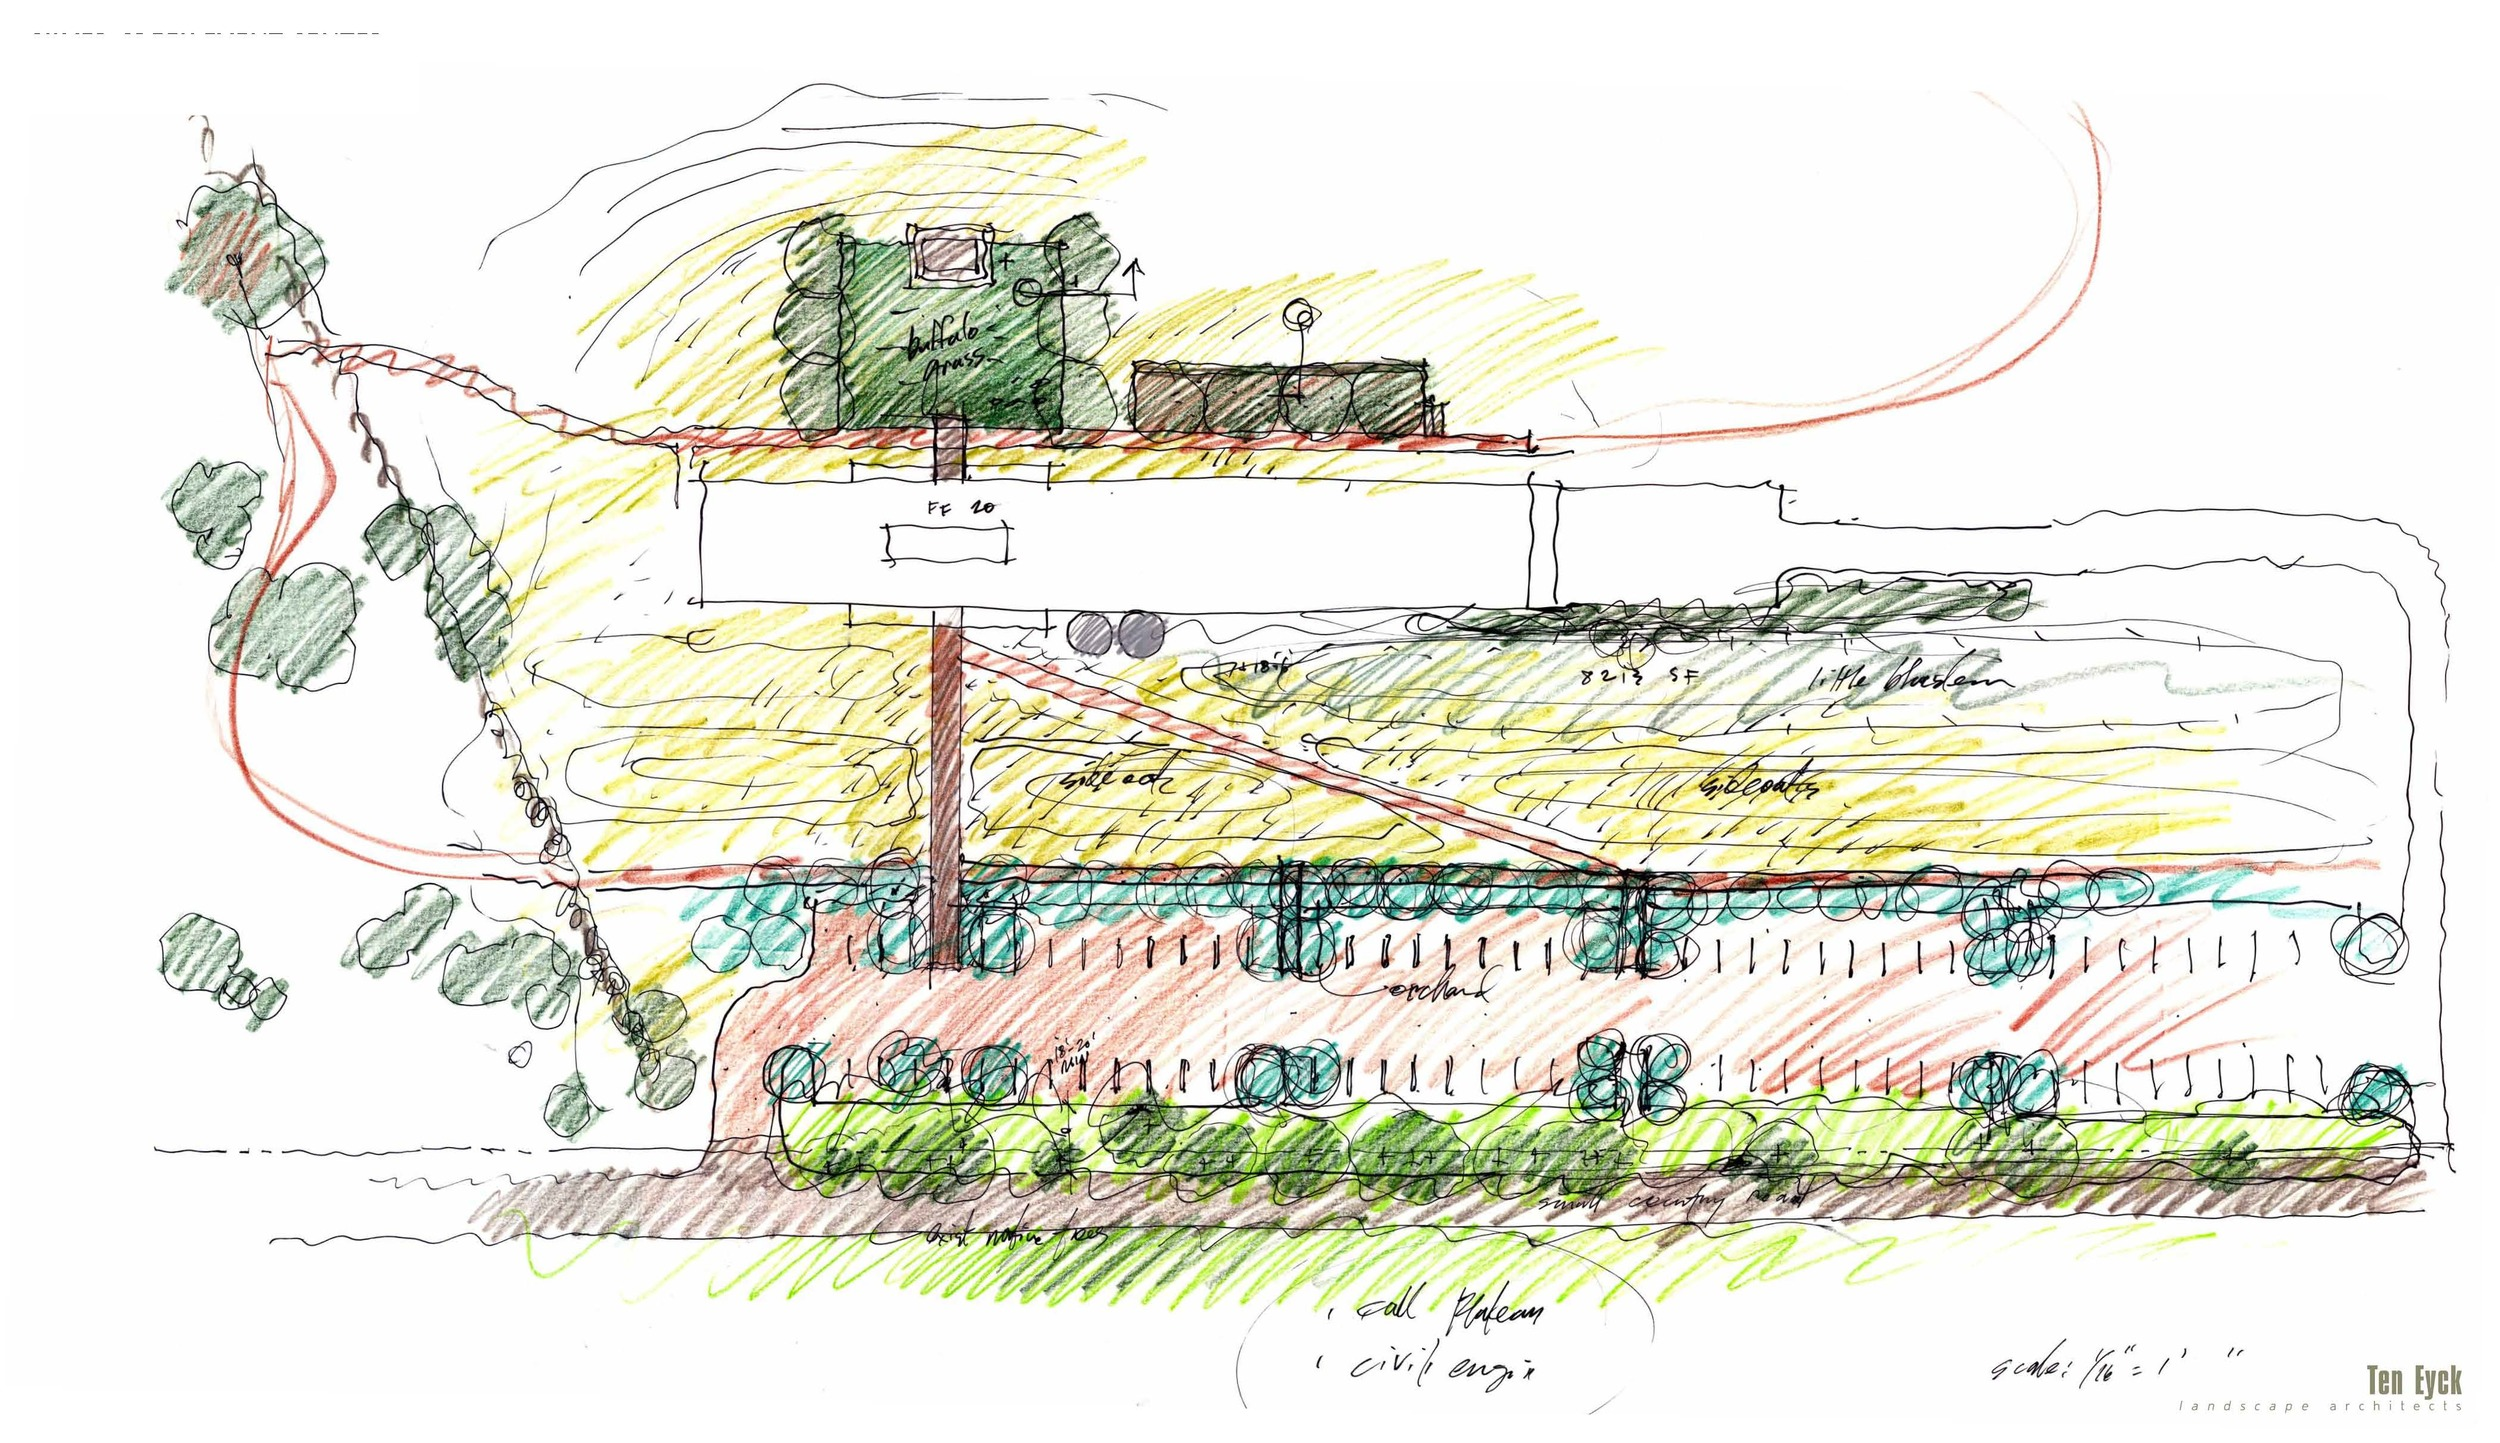 Drawing credit: Ten Eyck Landscape Architects